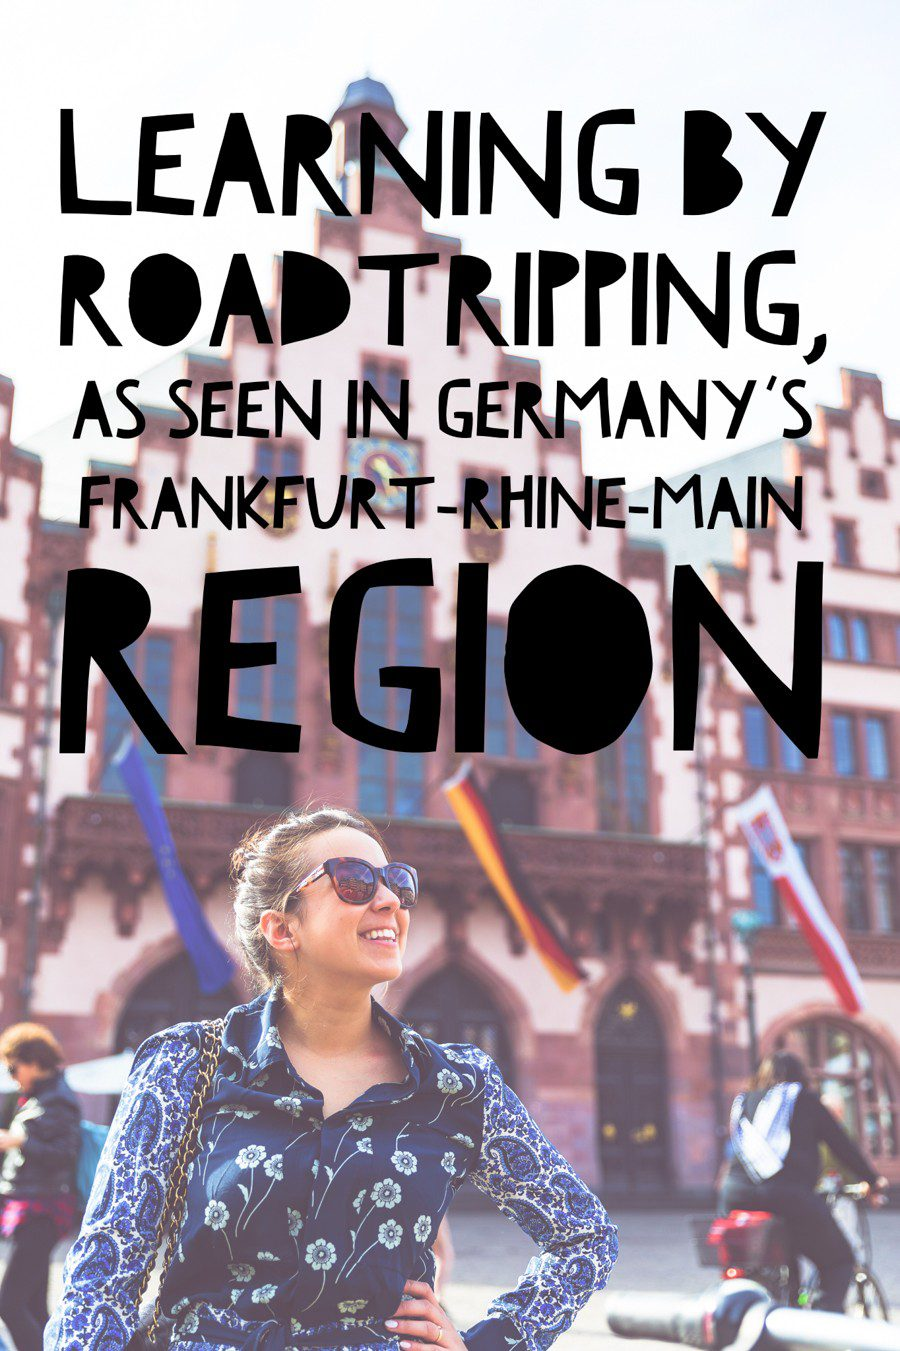 Why taking a road trip can be the best way to learn while traveling, explained by travel blogger JQ Louise, who roadtripped through Germany's Frankfurt-Rhine-Main region. This European gem is full of food, castles and sight-seeing, and road-tripping opens up local experiences. #Travel #Germany #RoadTrip